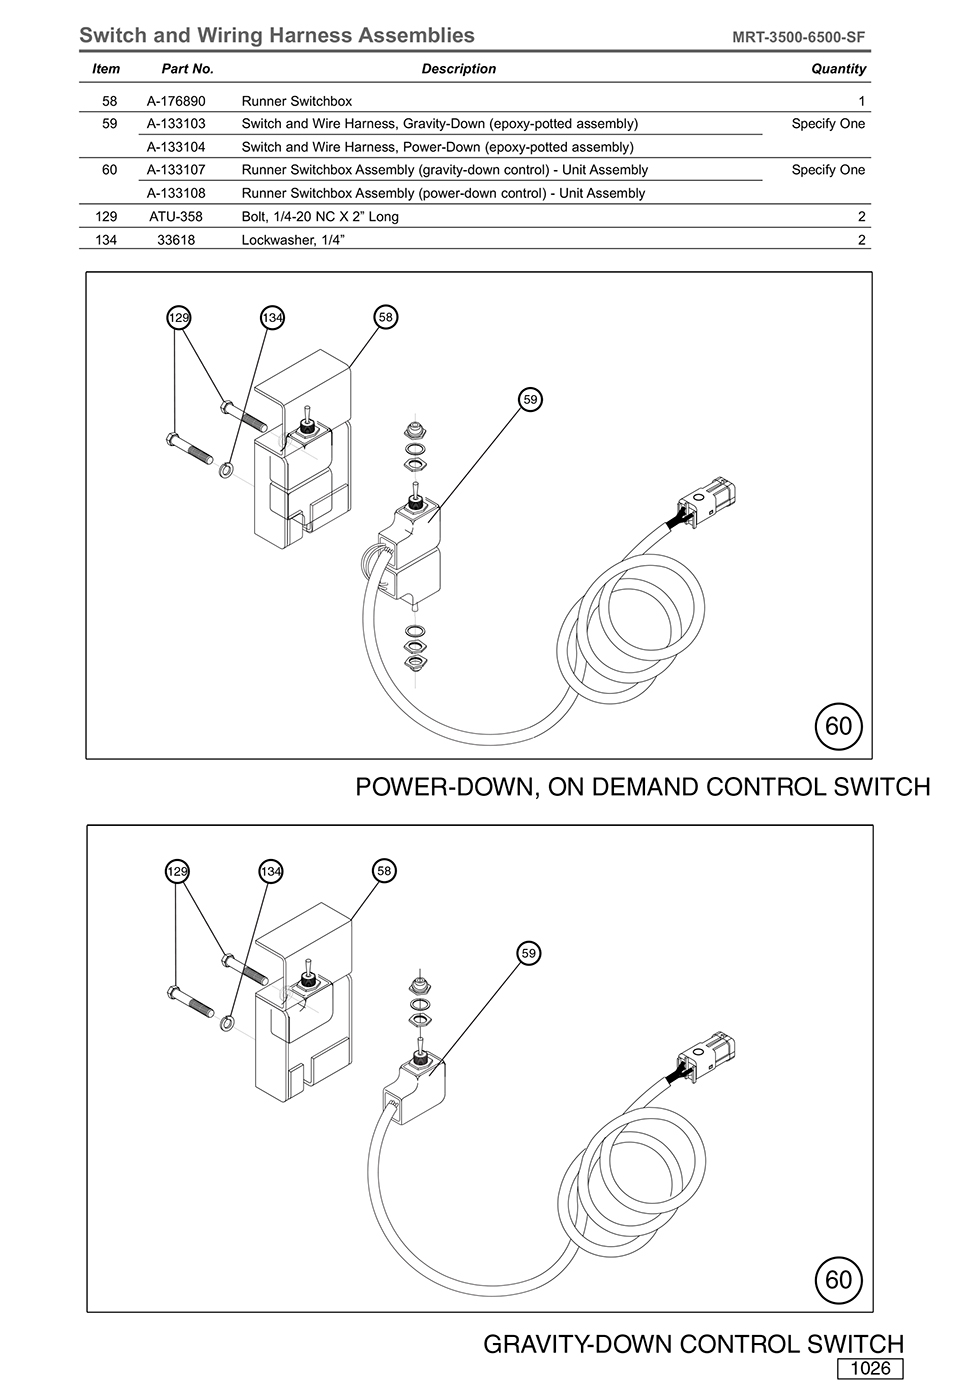 MRT-3500-6500-SF Switch and Wiring Harness Assemblies Diagram